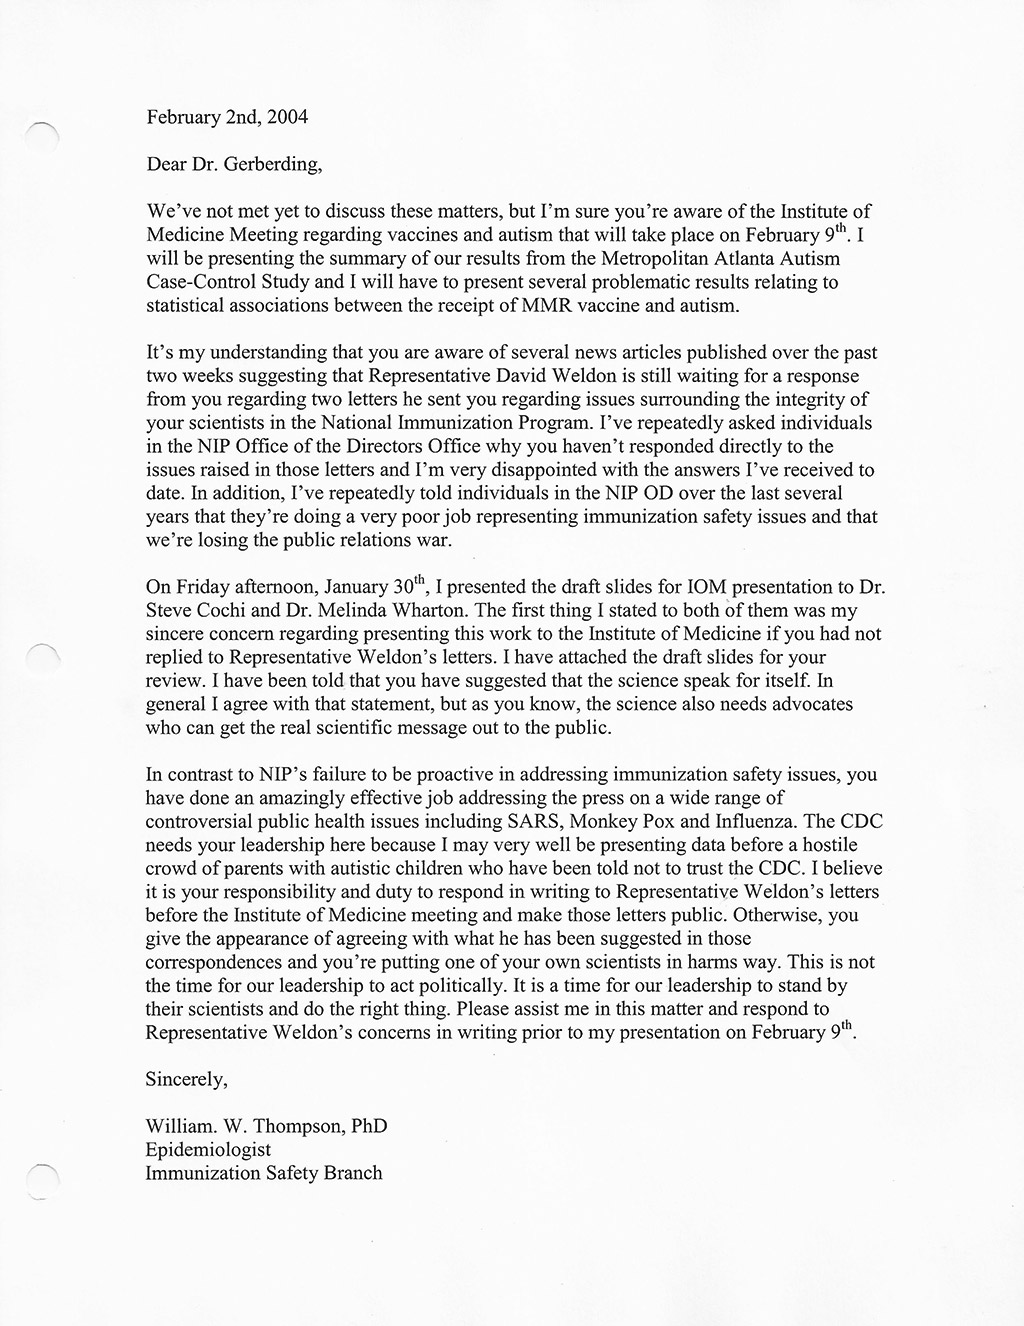 cdc whistleblower s secret letter to gerberding released by click this image thumbnail to view the full letter for yourself